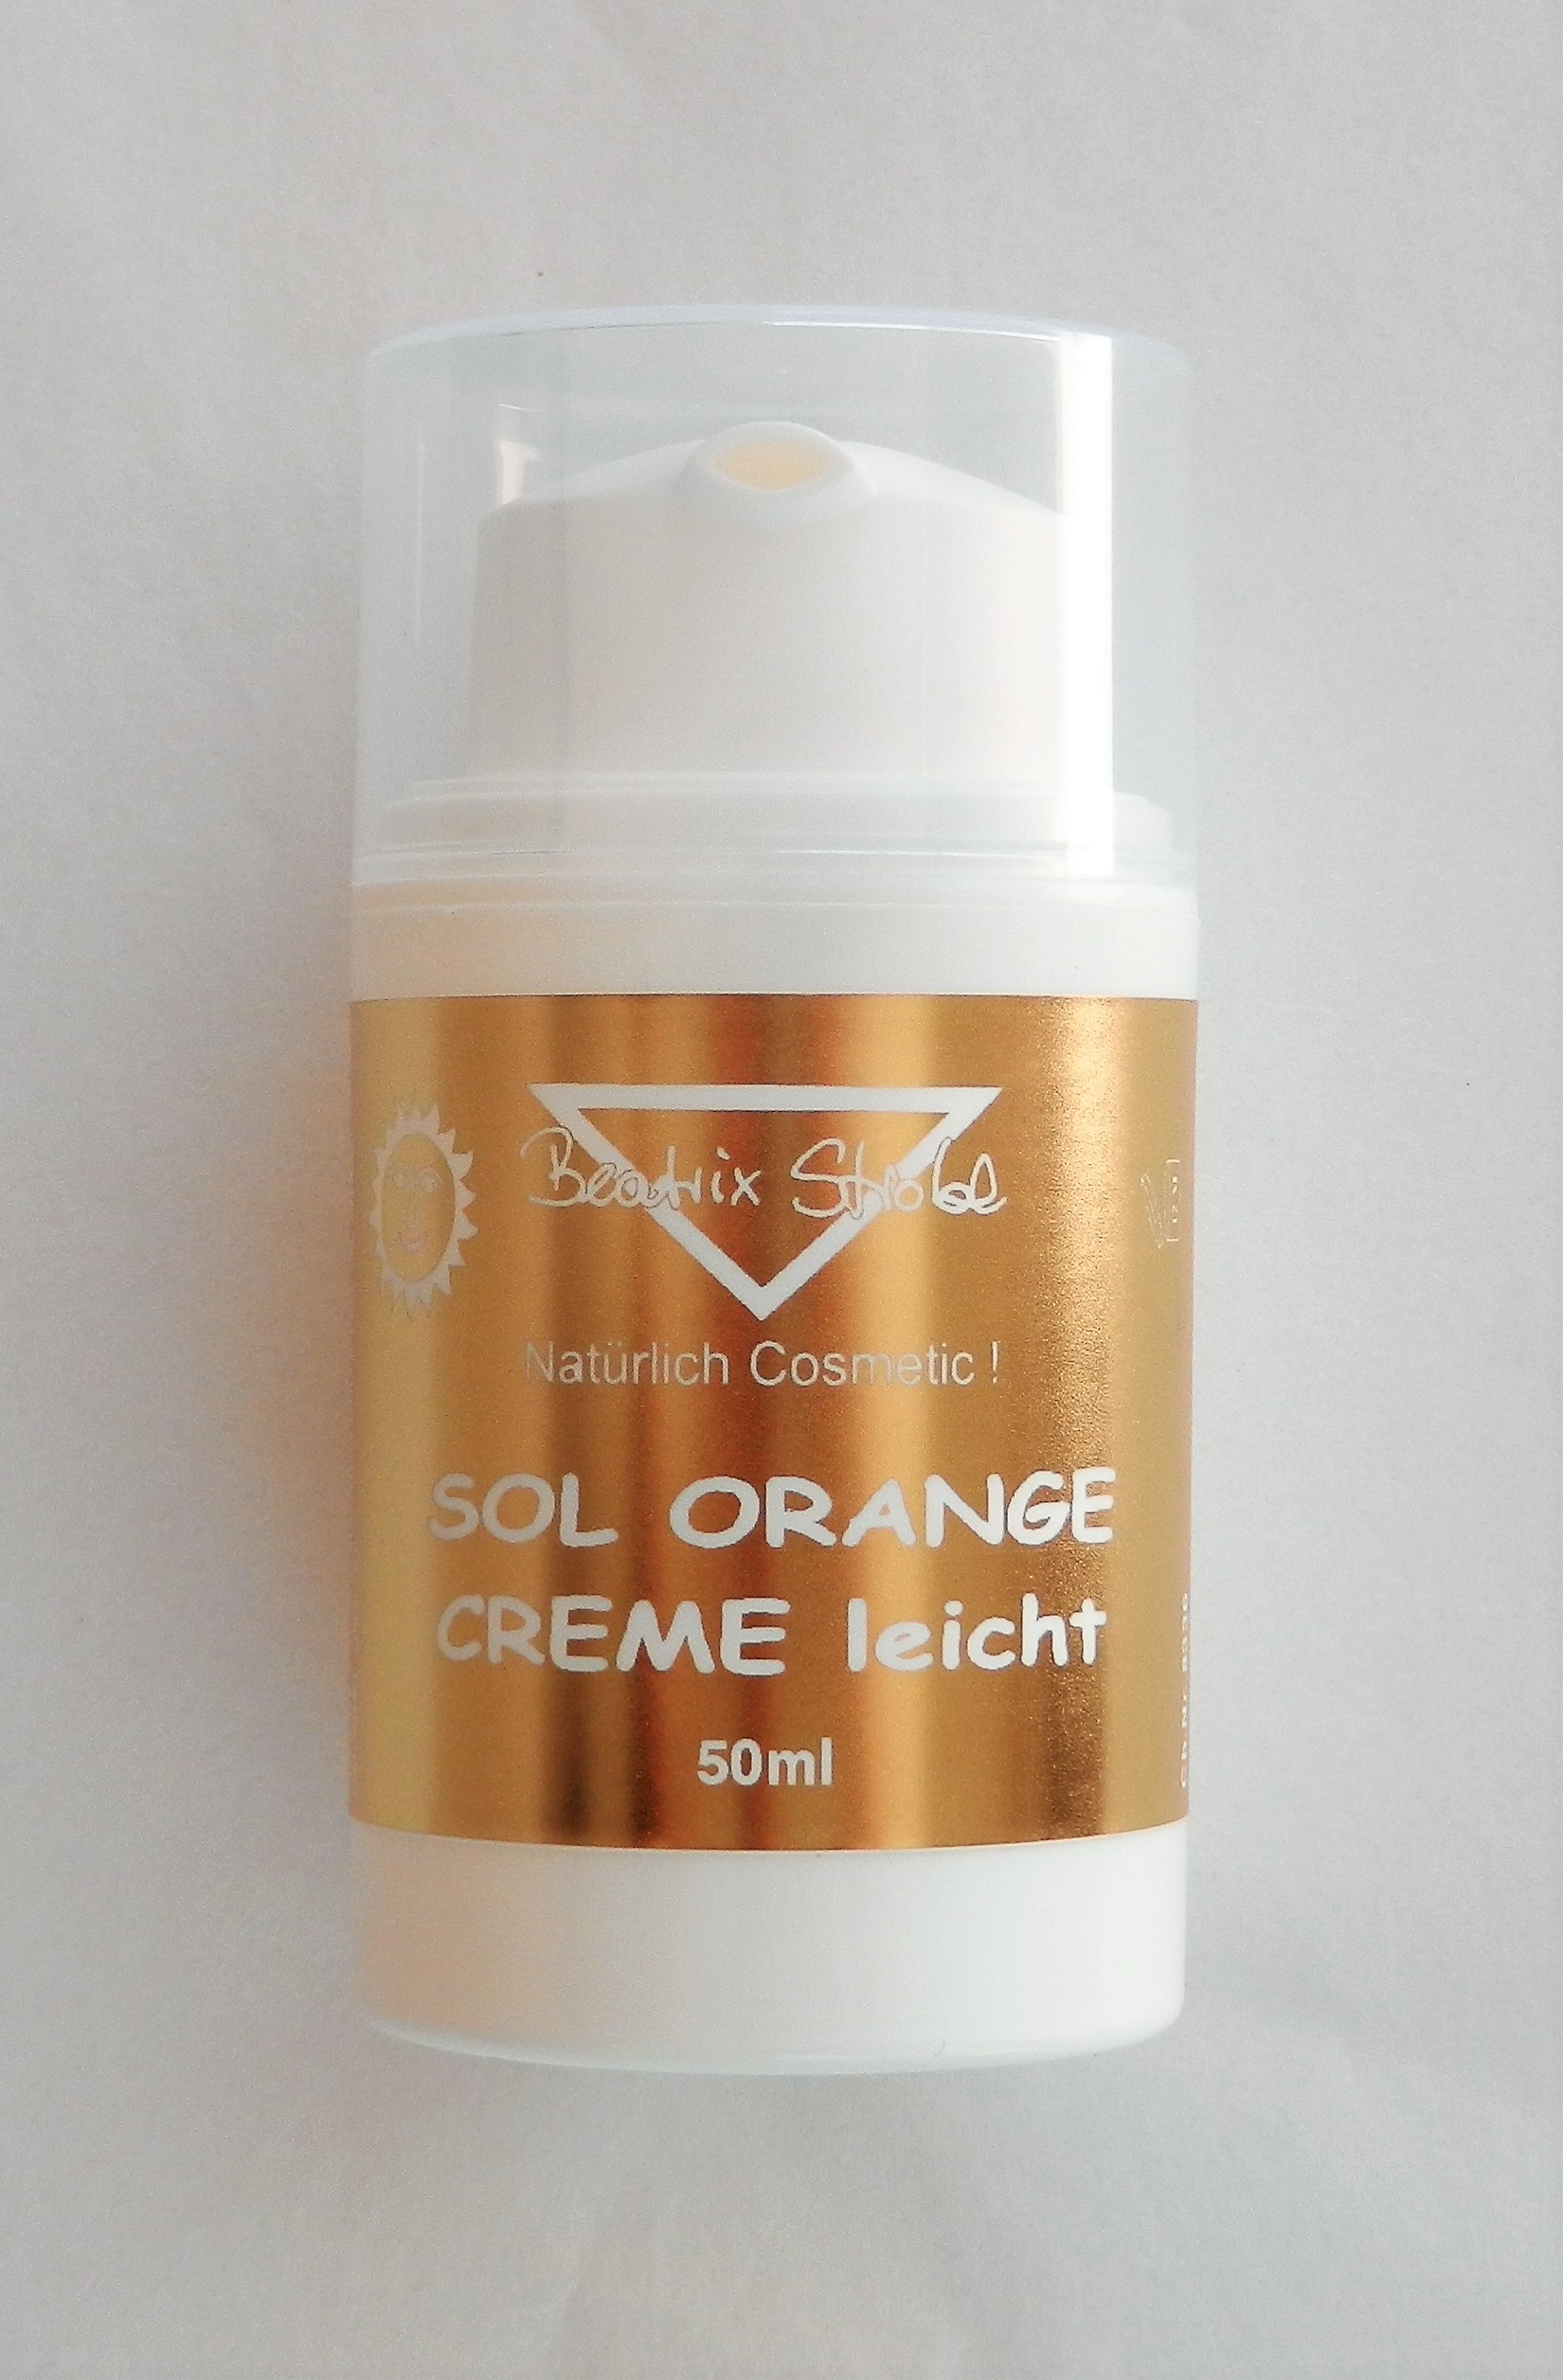 SOL ORANGE CREME PACKUNG / SOL ORANGE CREME LEICHT